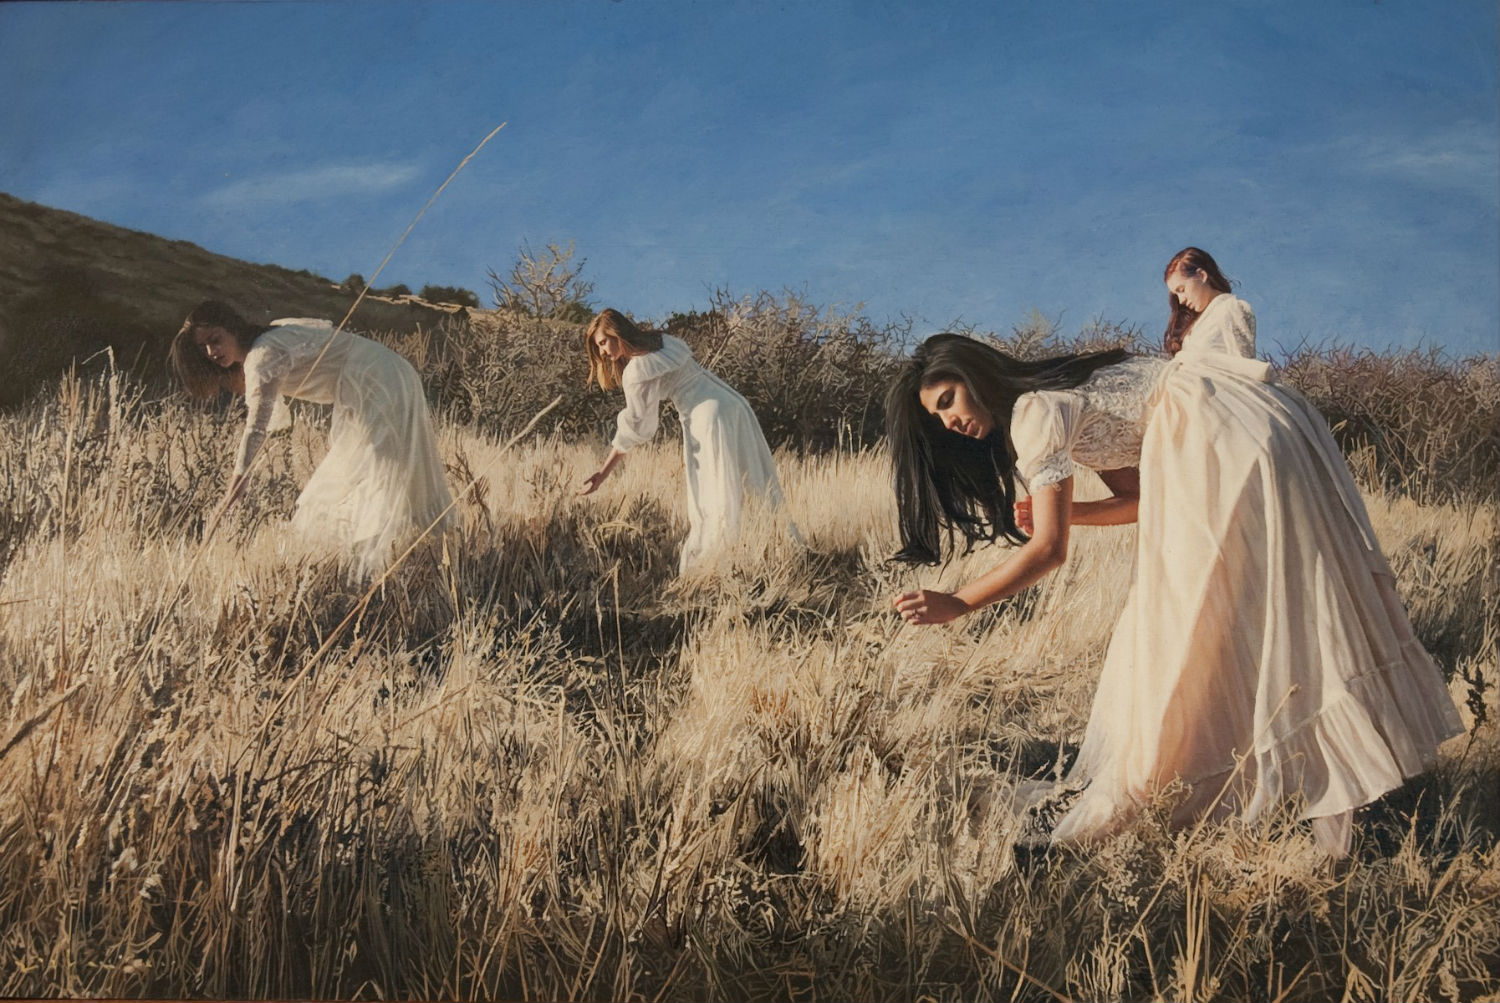 yigal ozeri hyperrealism painting girl field